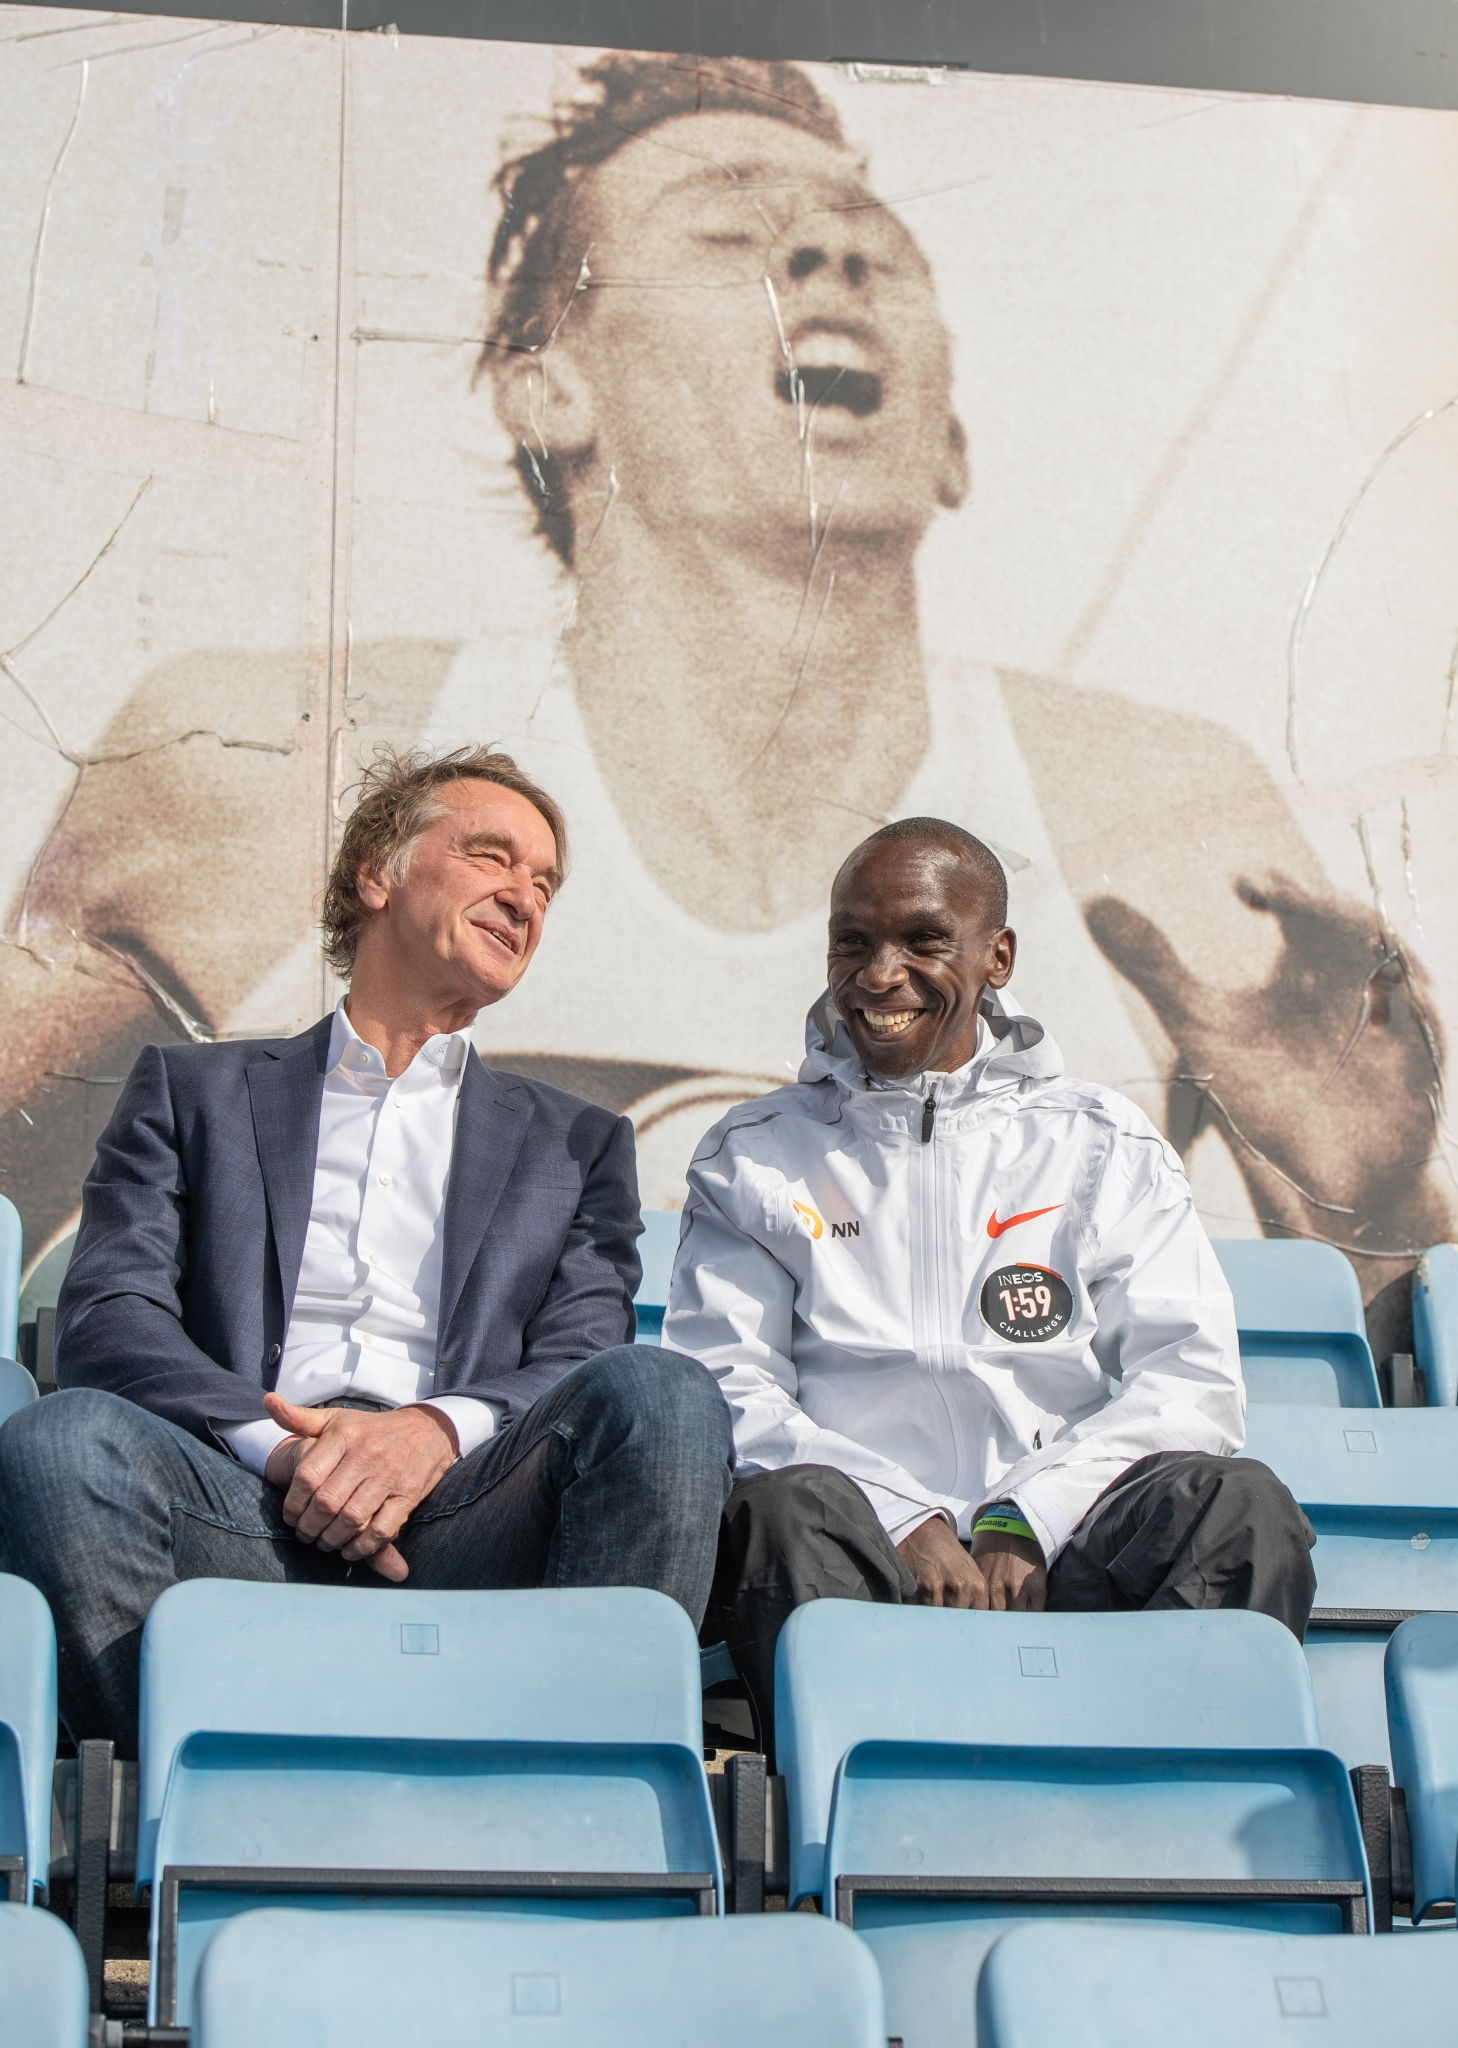 Jim Ratcliffe & Eliud Kipchoge KEN, at the Iffley road running track on the 30th April 2019. Photo: Thomas Lovelock for london marathon events